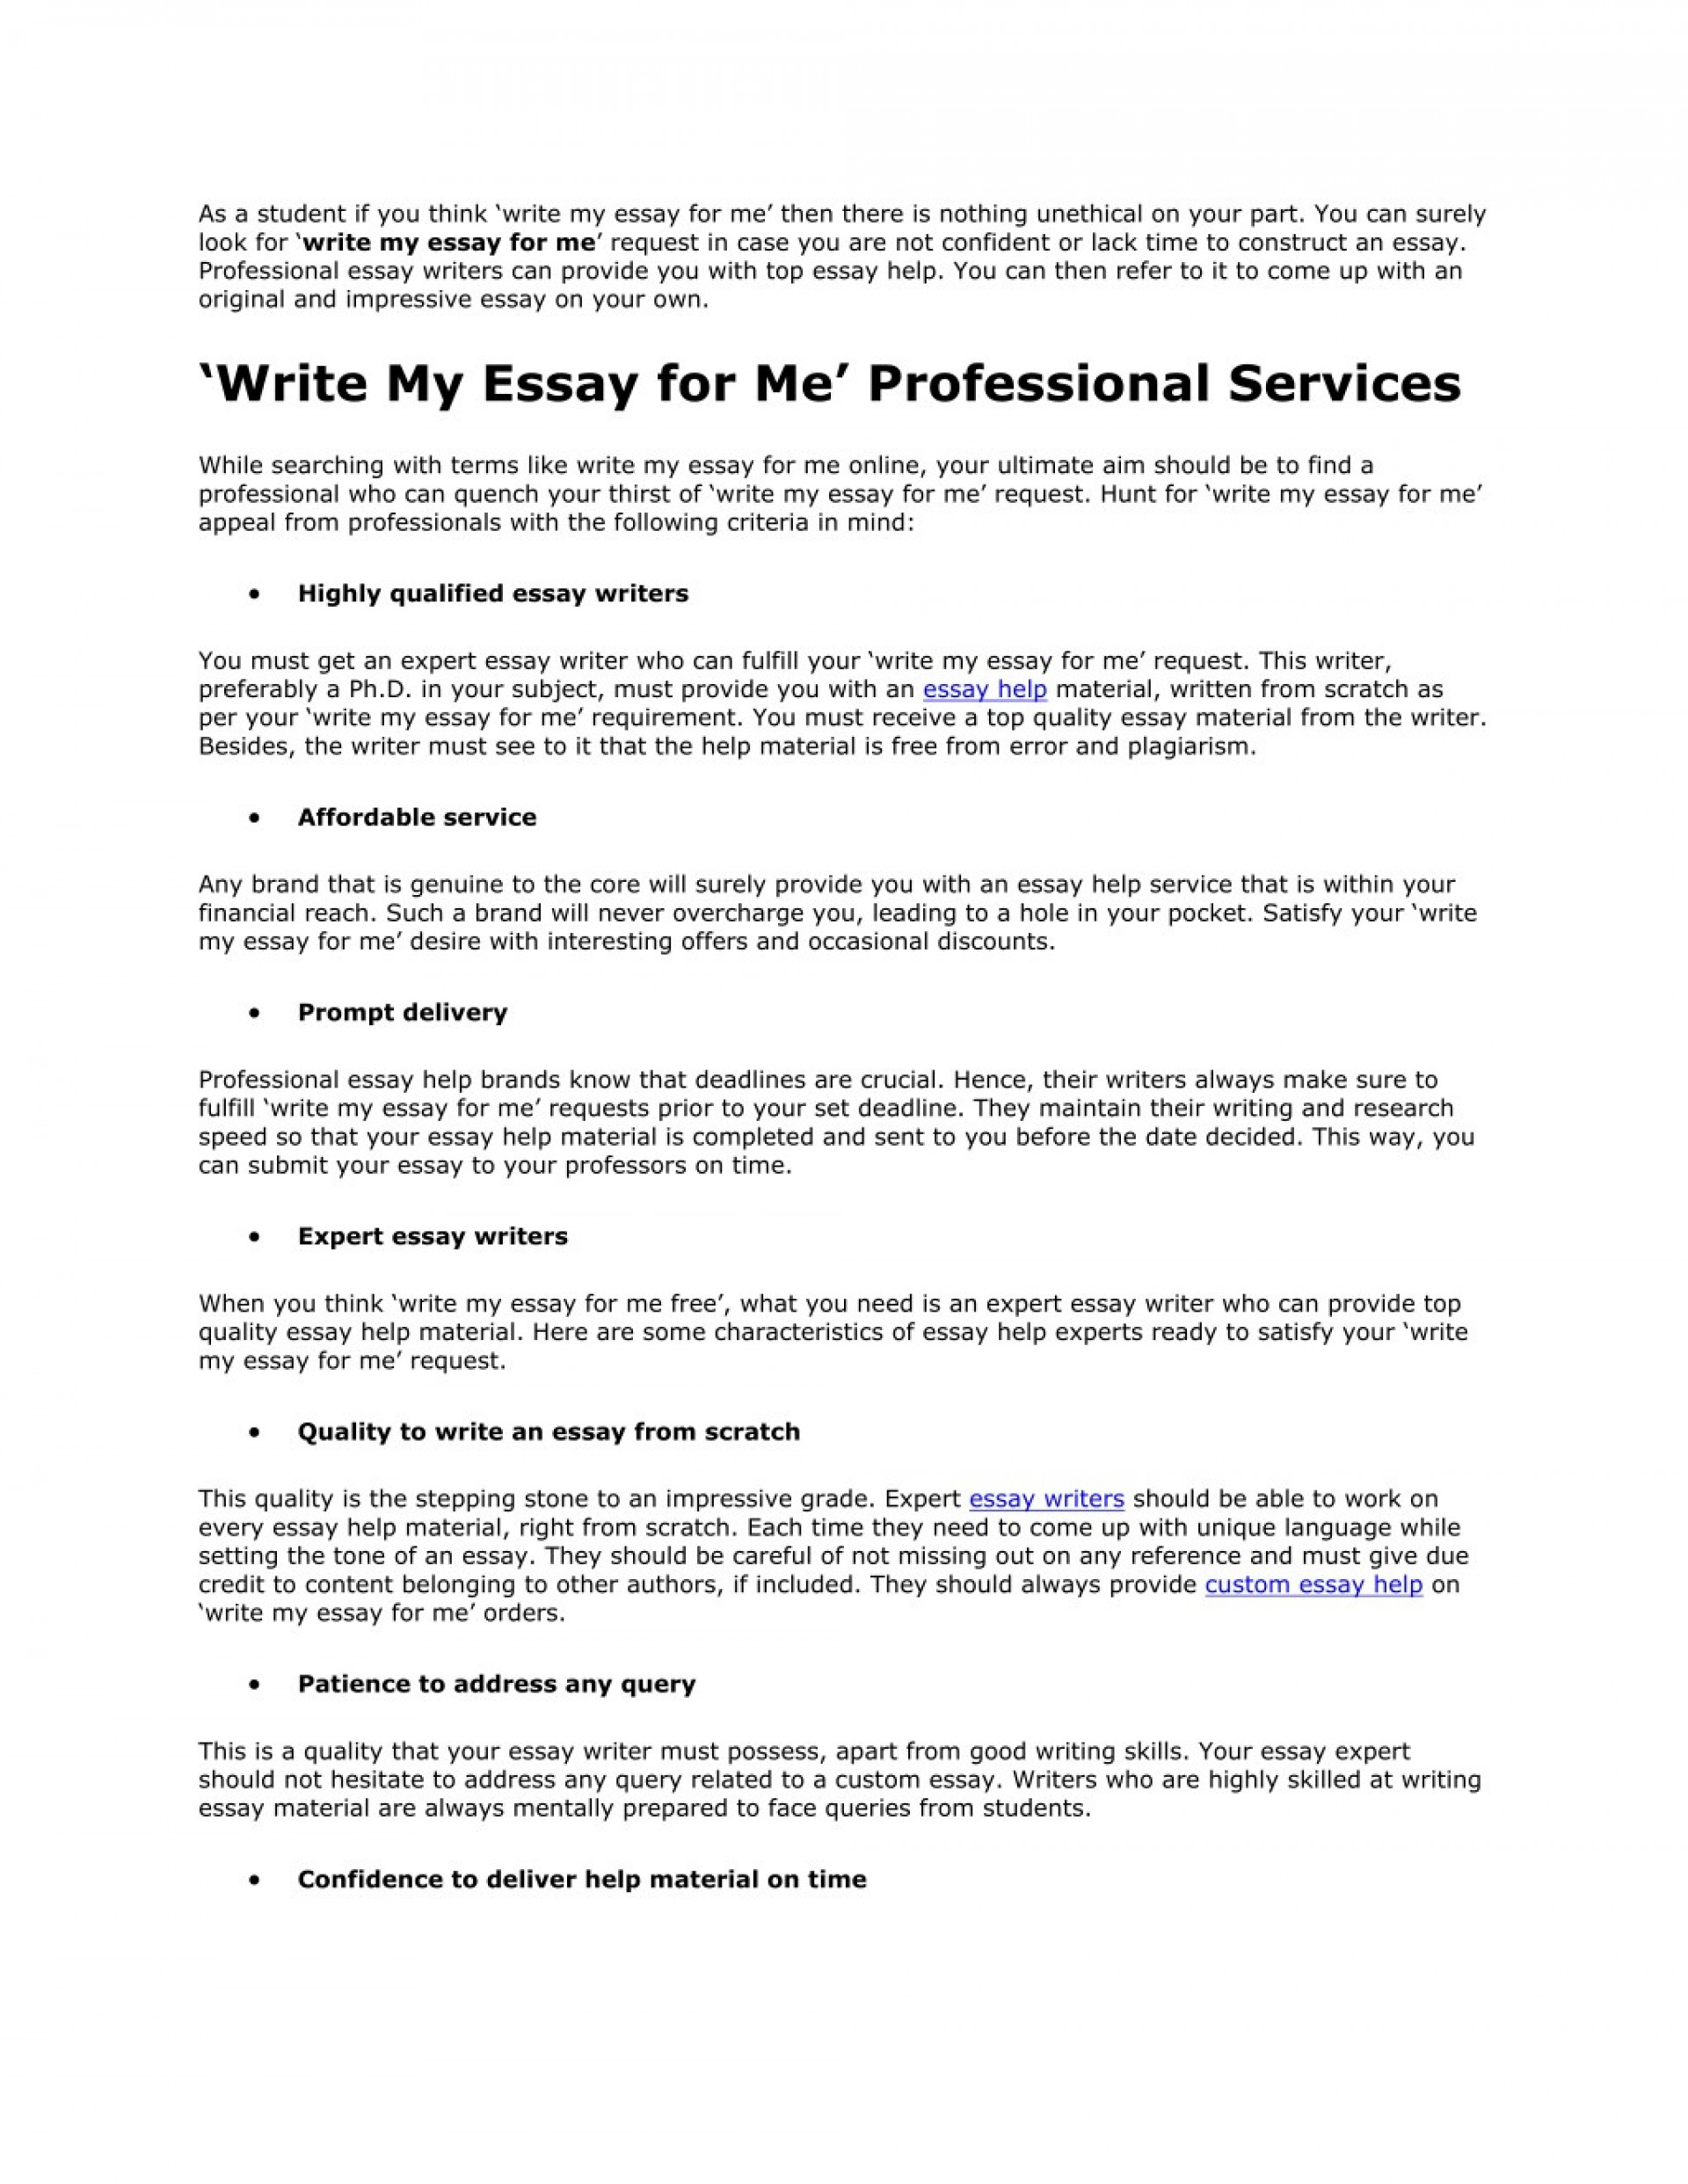 017 Write My Essay For Me Example As Student If You Think Surprising App Free Uk 1920